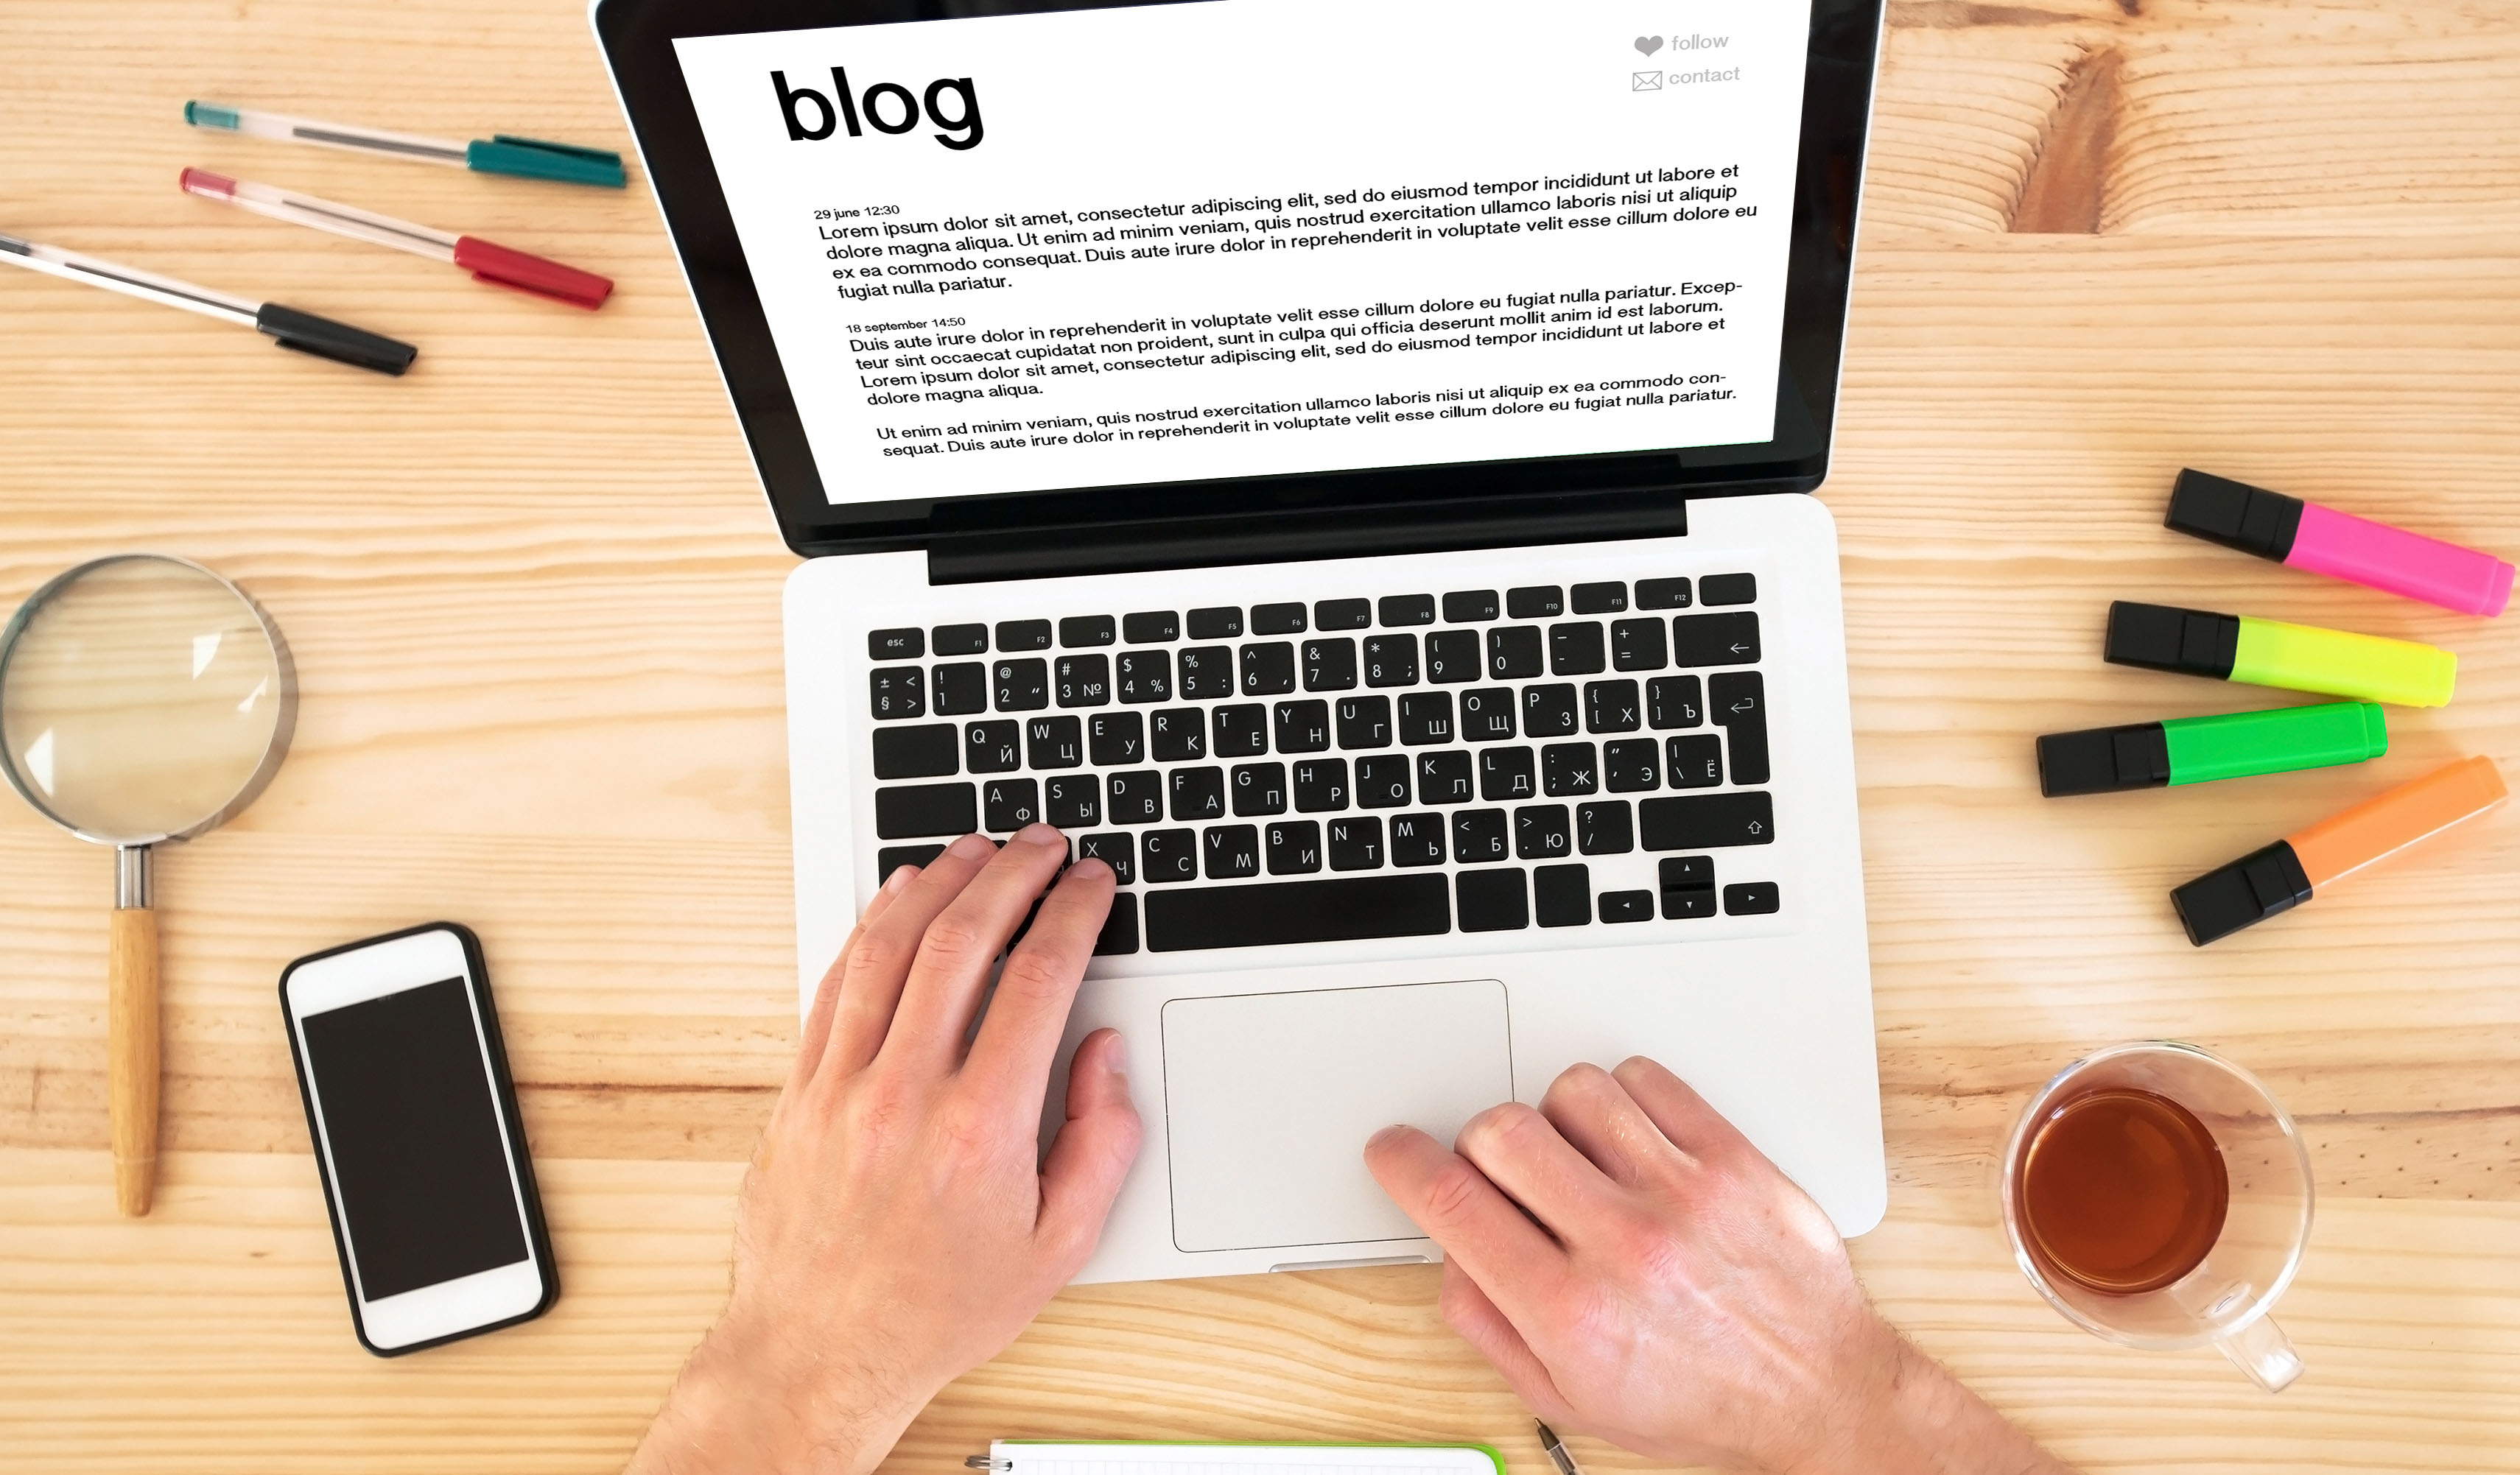 Guidelines for your blog should include